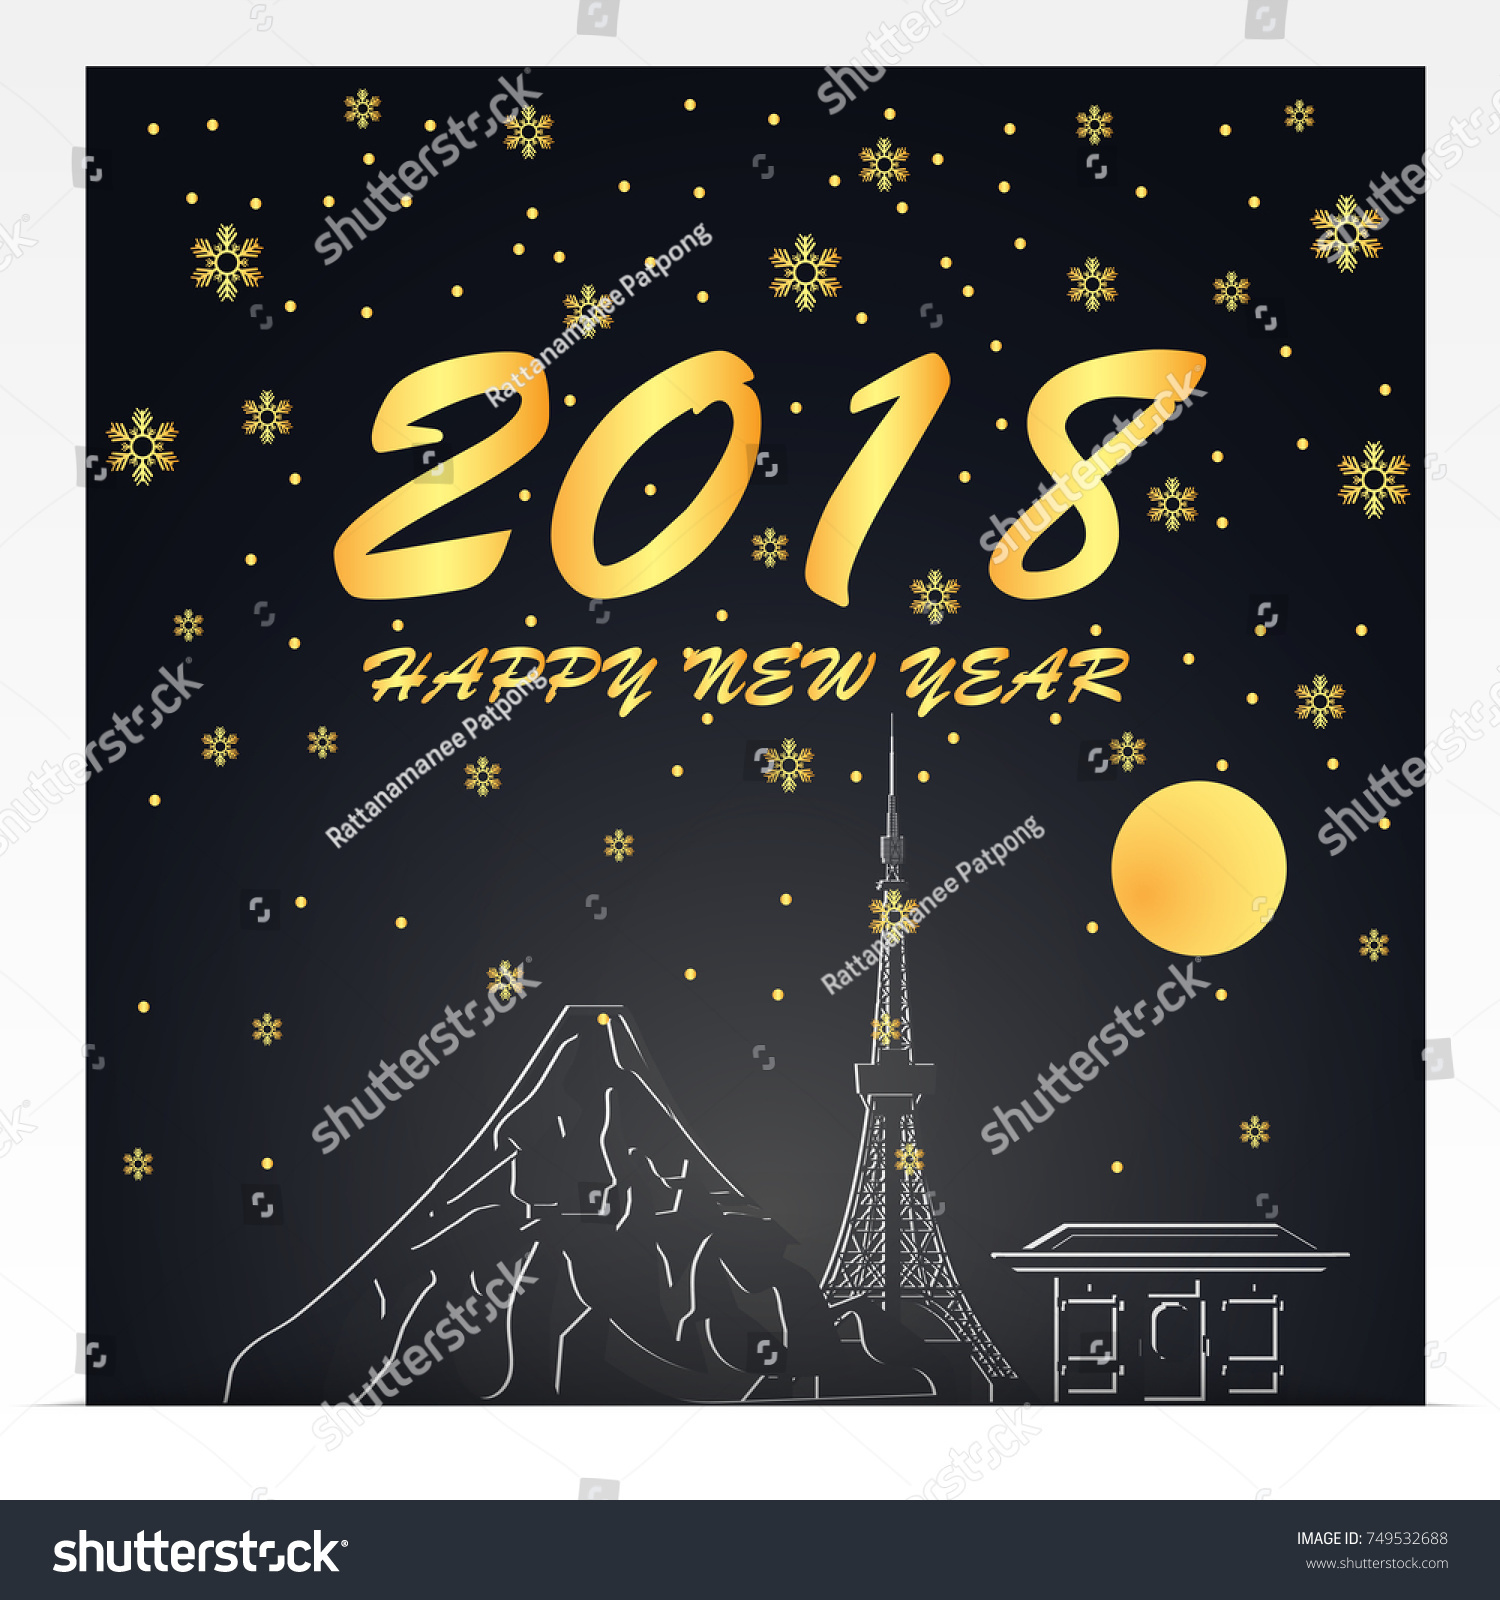 happy new year 2018 illustration of japan landmarks gold and black color tone